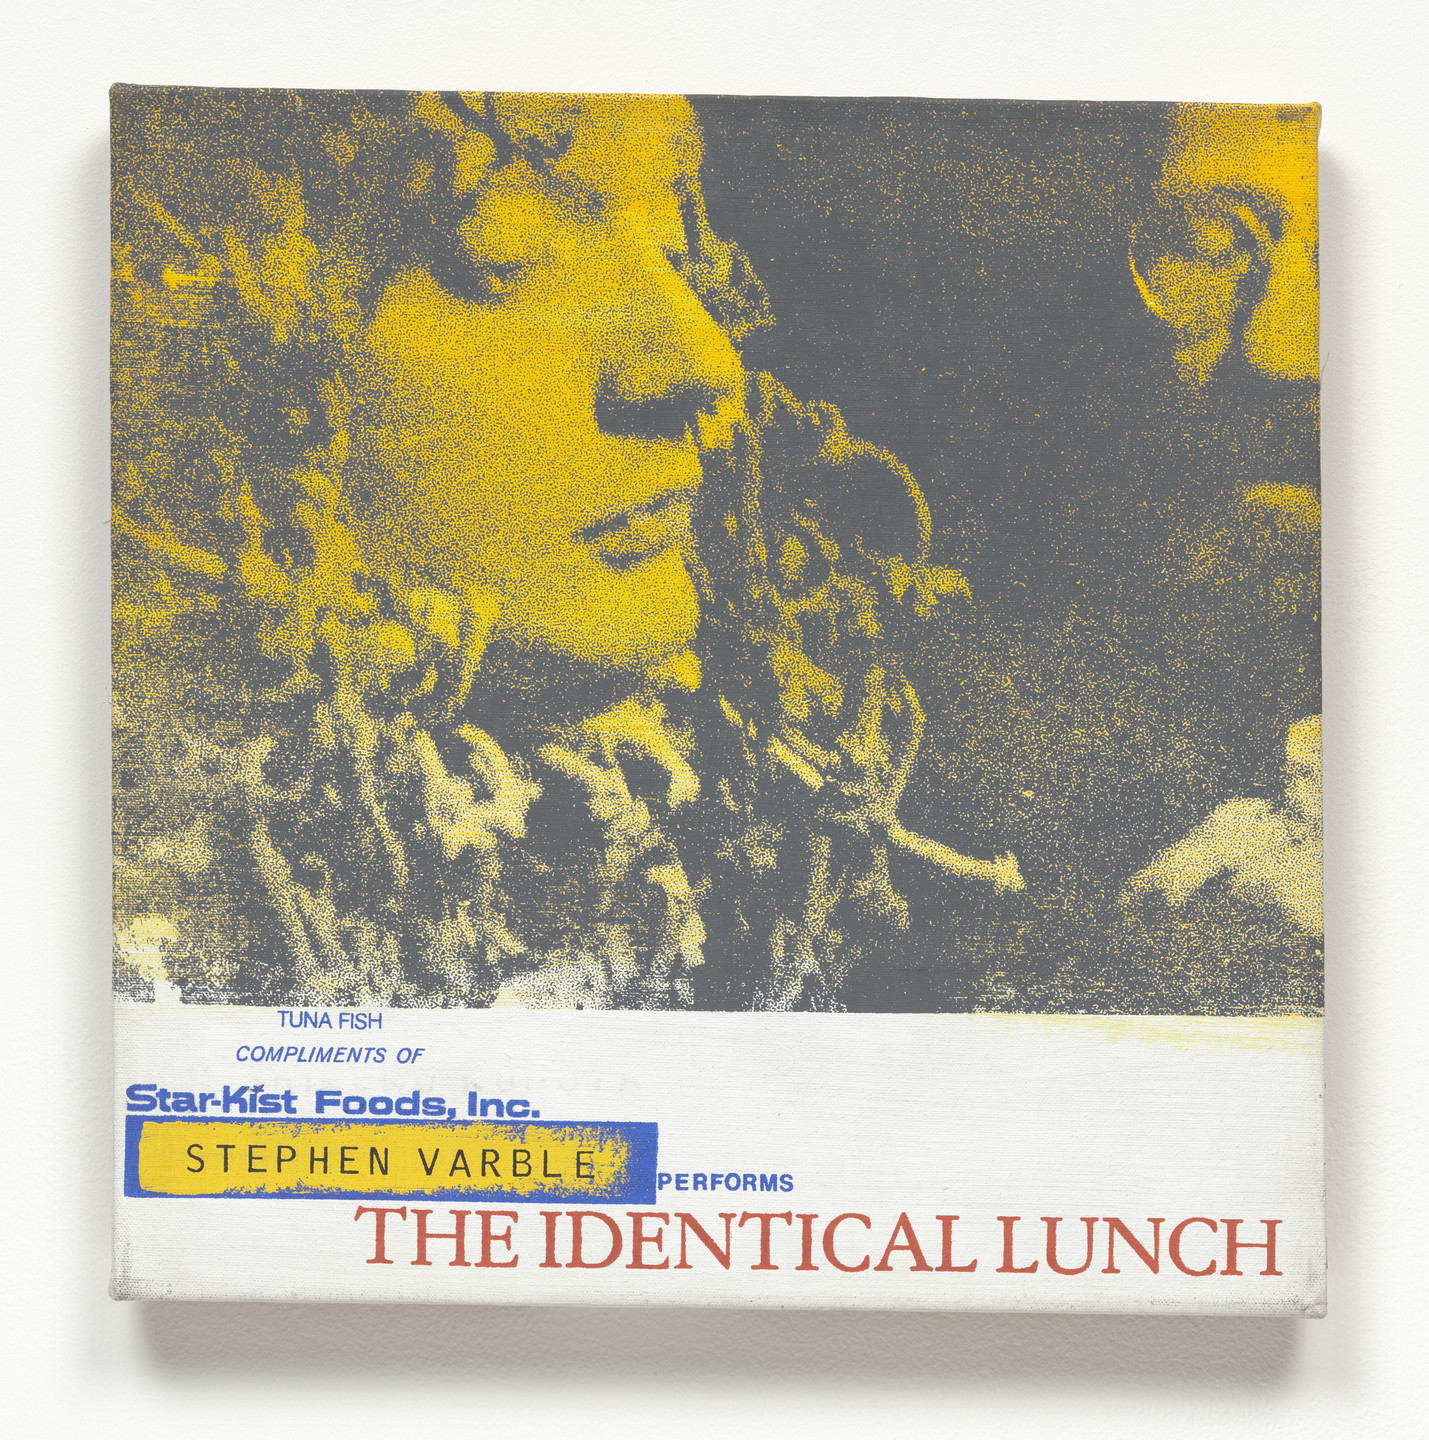 Alison Knowles. Stephen Varble Performs The Identical Lunch. 1969, realized 1973